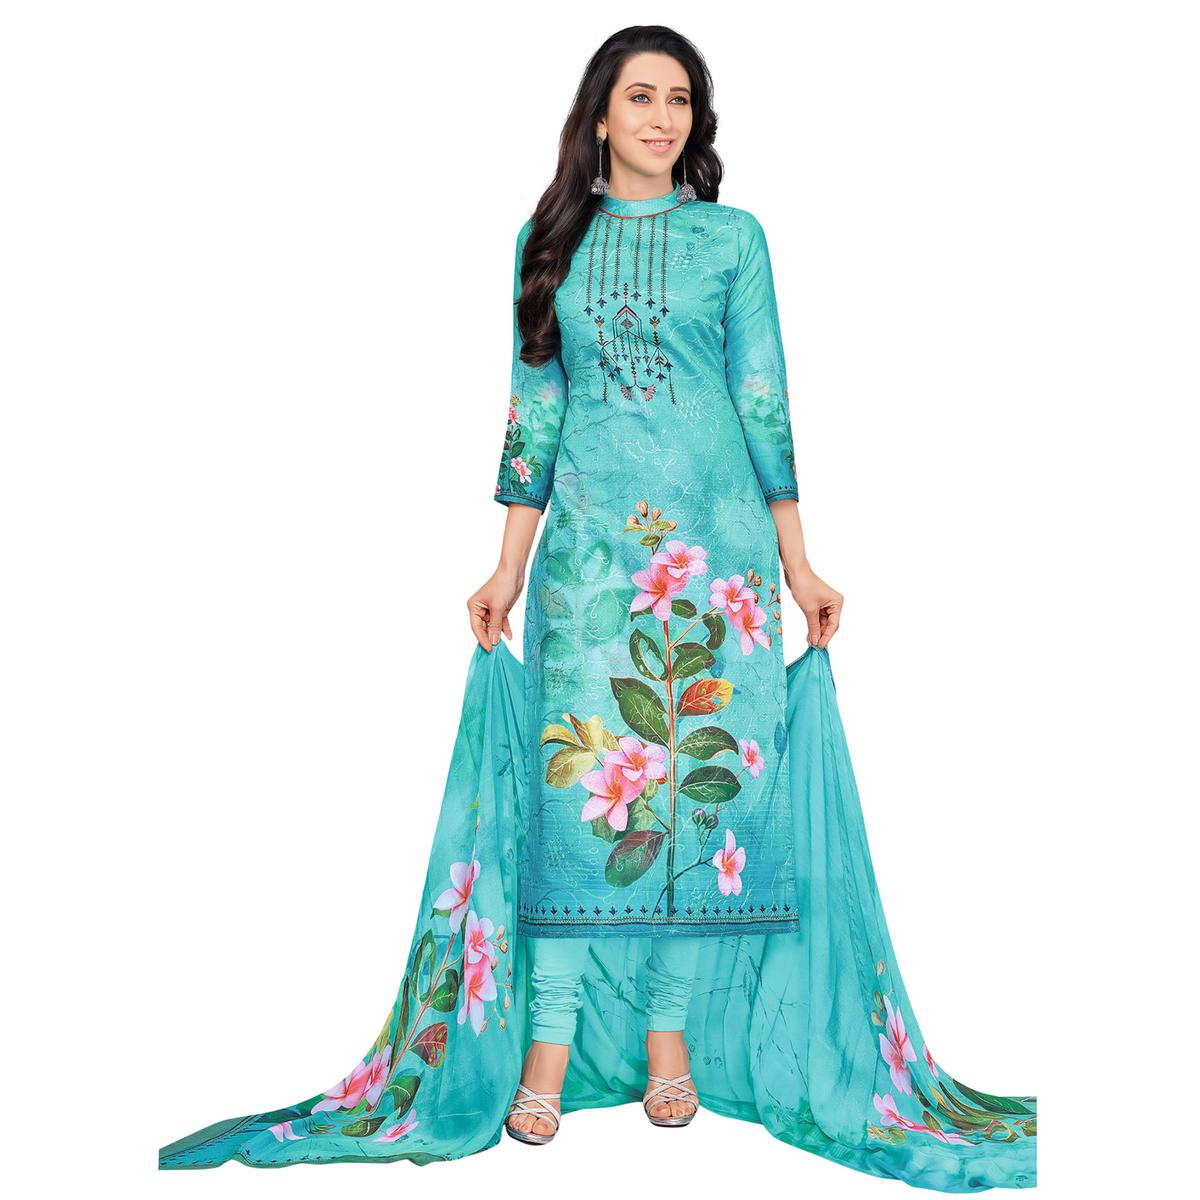 Blooming Blue Colored Casual Wear Digital Printed Pure Cotton Dress Material